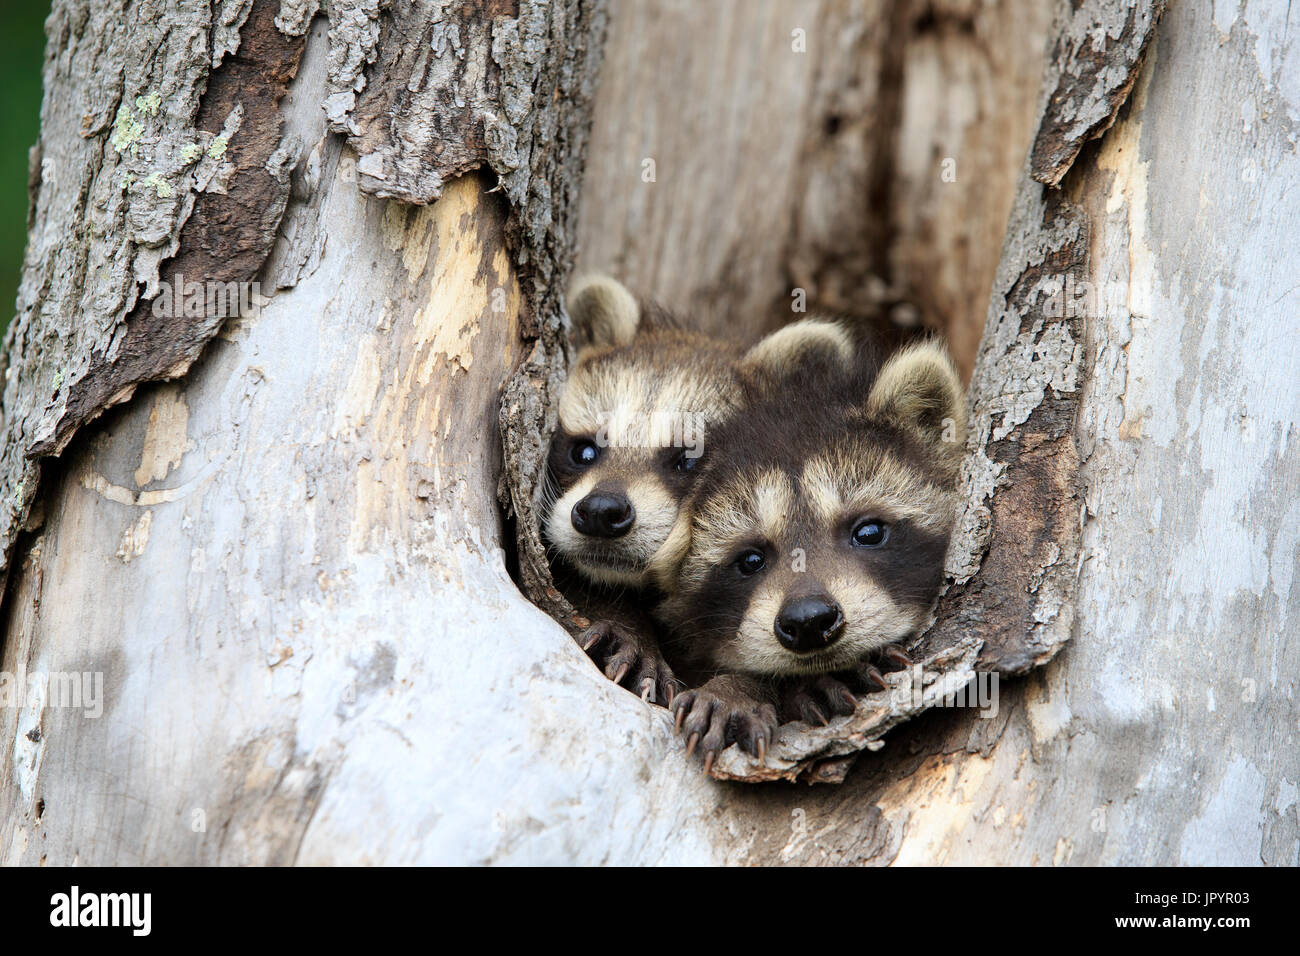 Young Raccoons in a hollow trunk - Minnesota USA - Stock Image